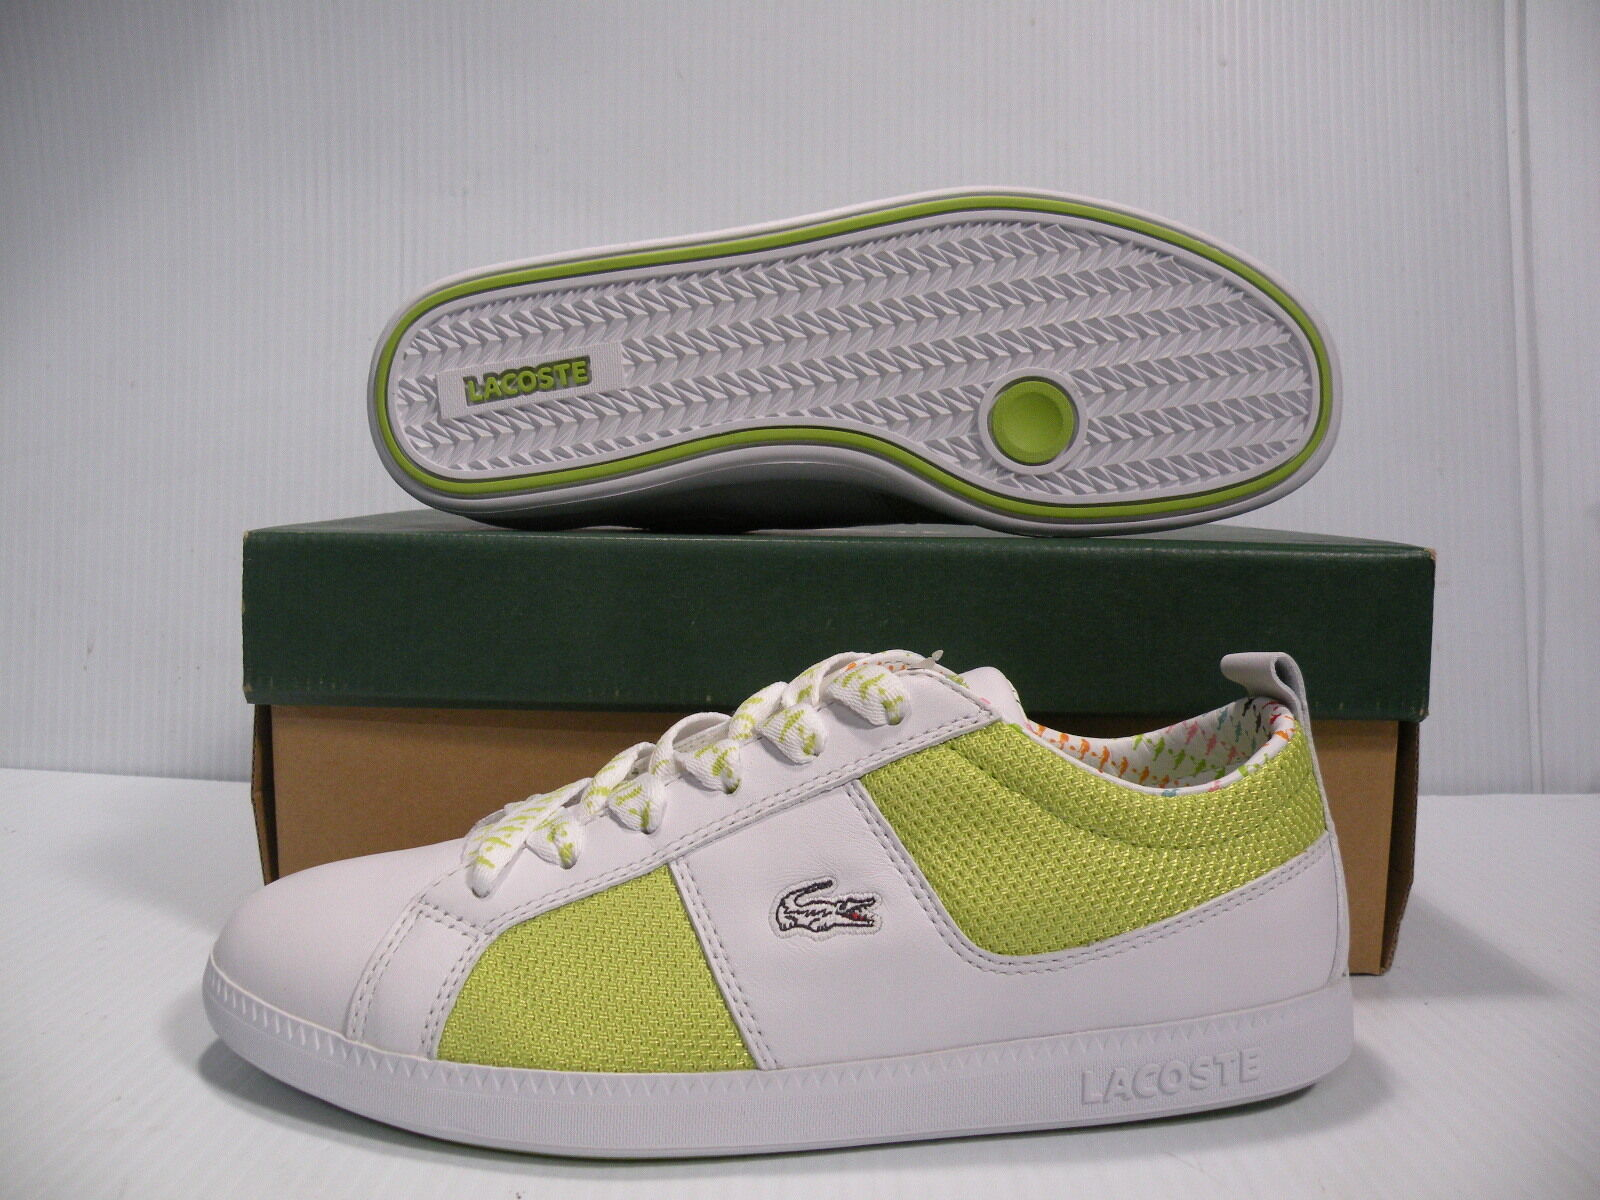 LACOSTE OBSERVE TNS SPORT LOW Femme Chaussures Blanc/Vert 13SPW1961-F01 Taille 10 NEW